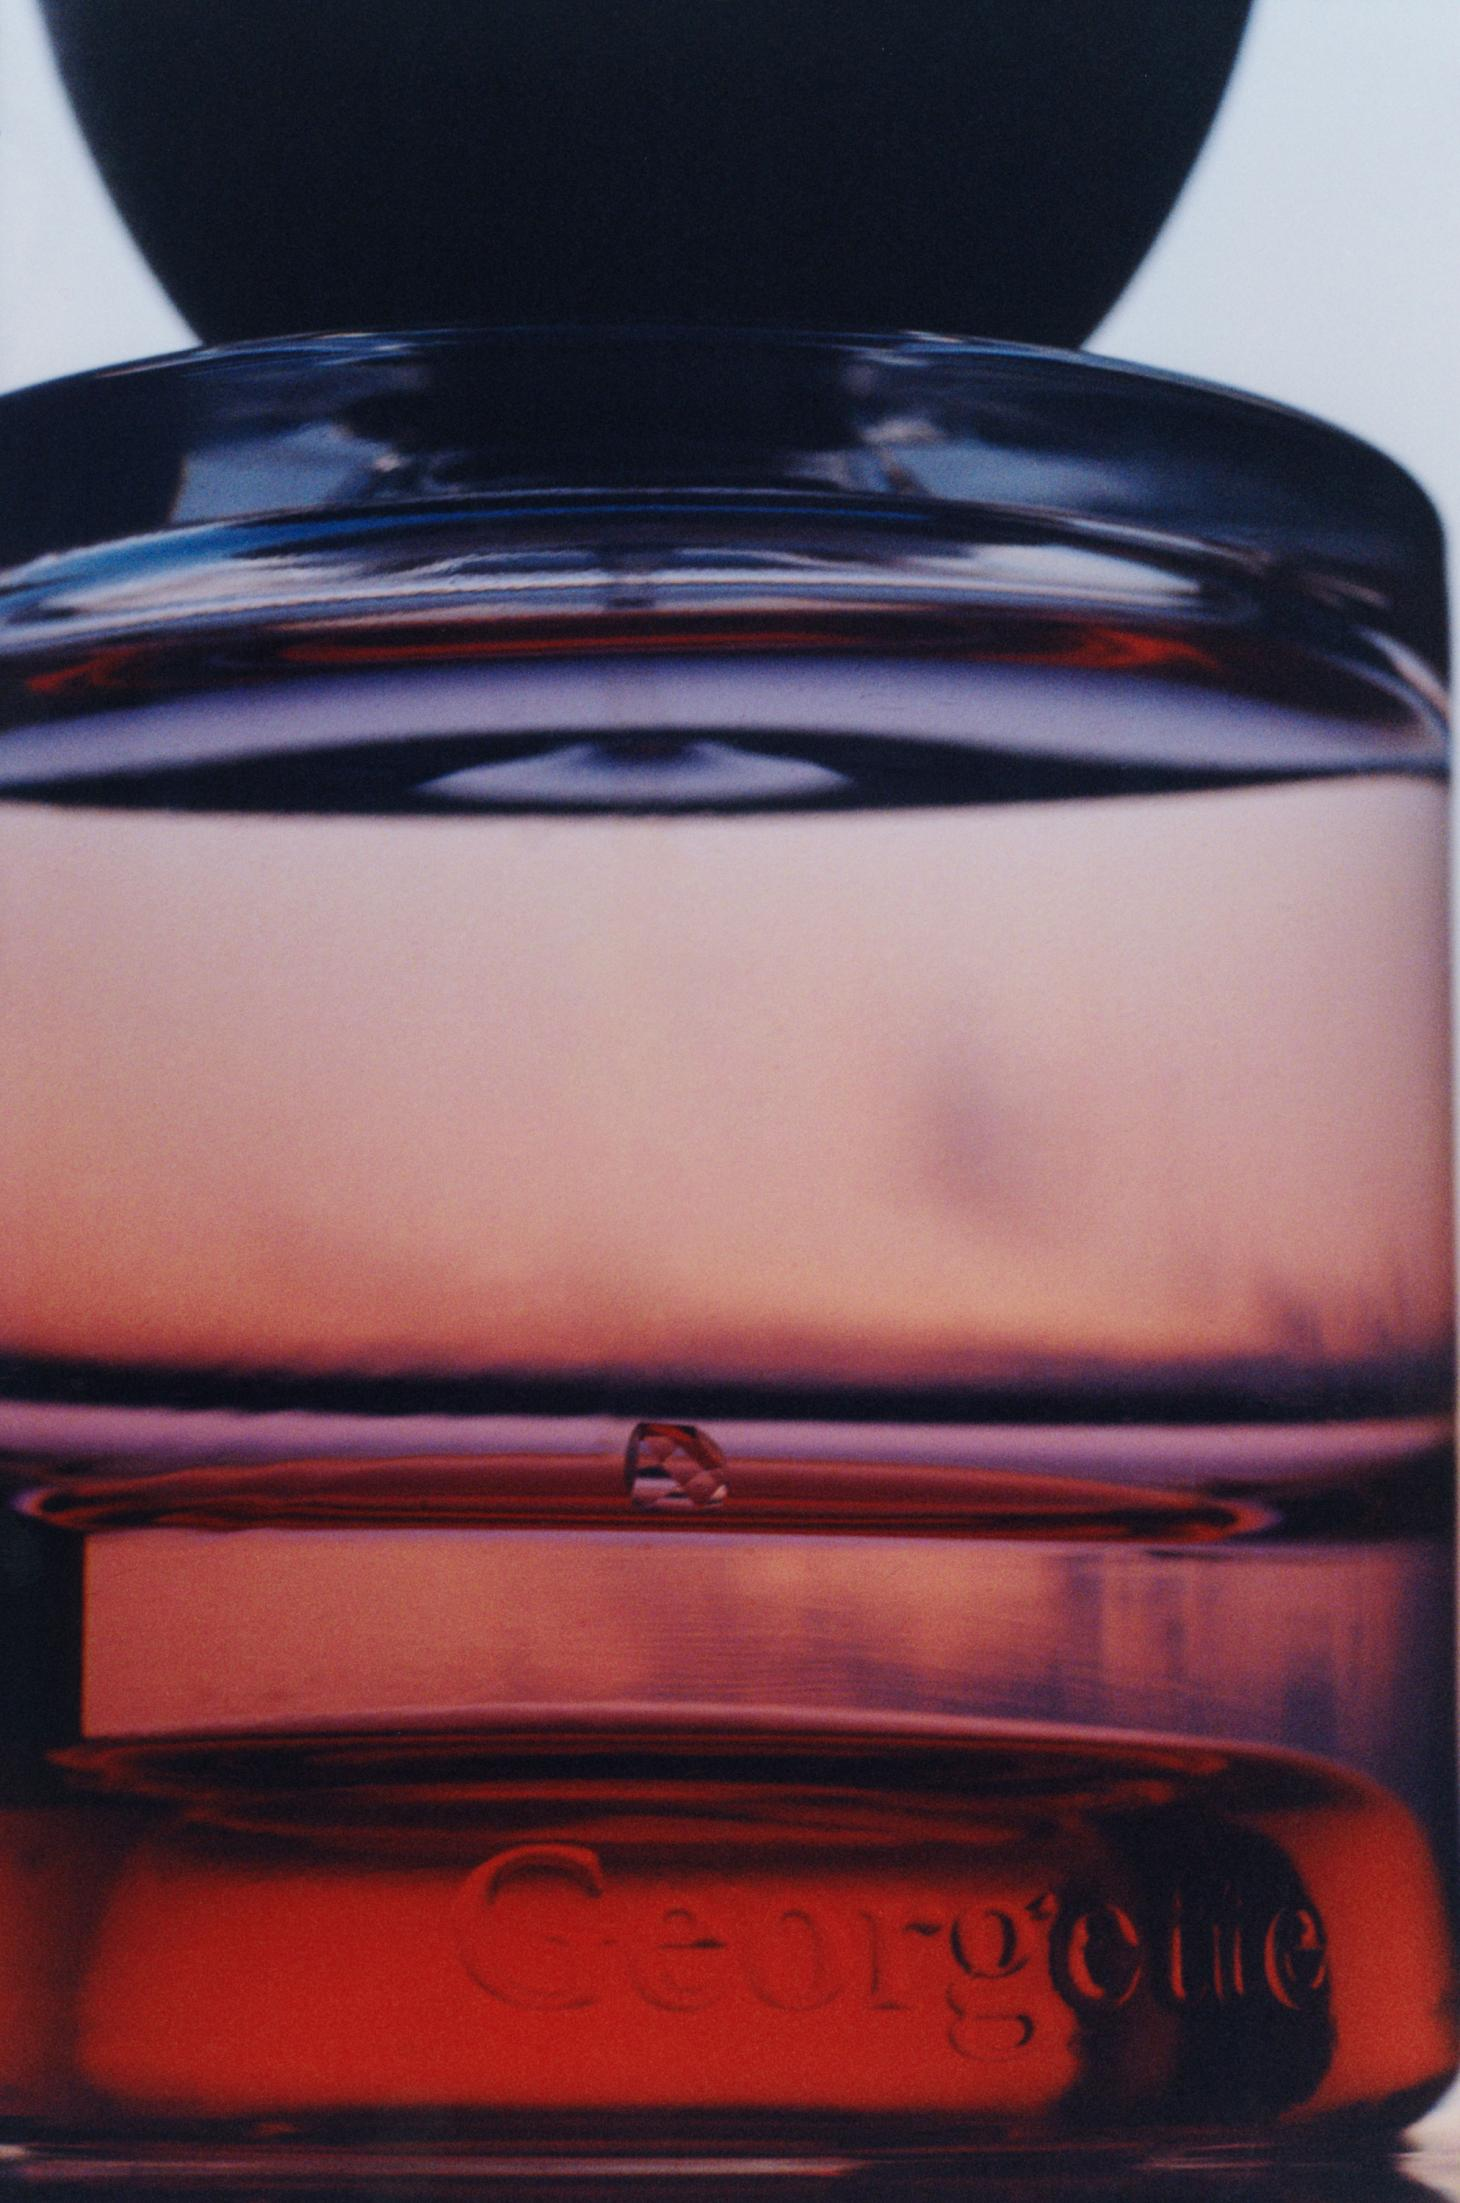 Vyrao Georgette fragrance photographed by Alex Lesse in close up with purple and pink shades running through the bottle